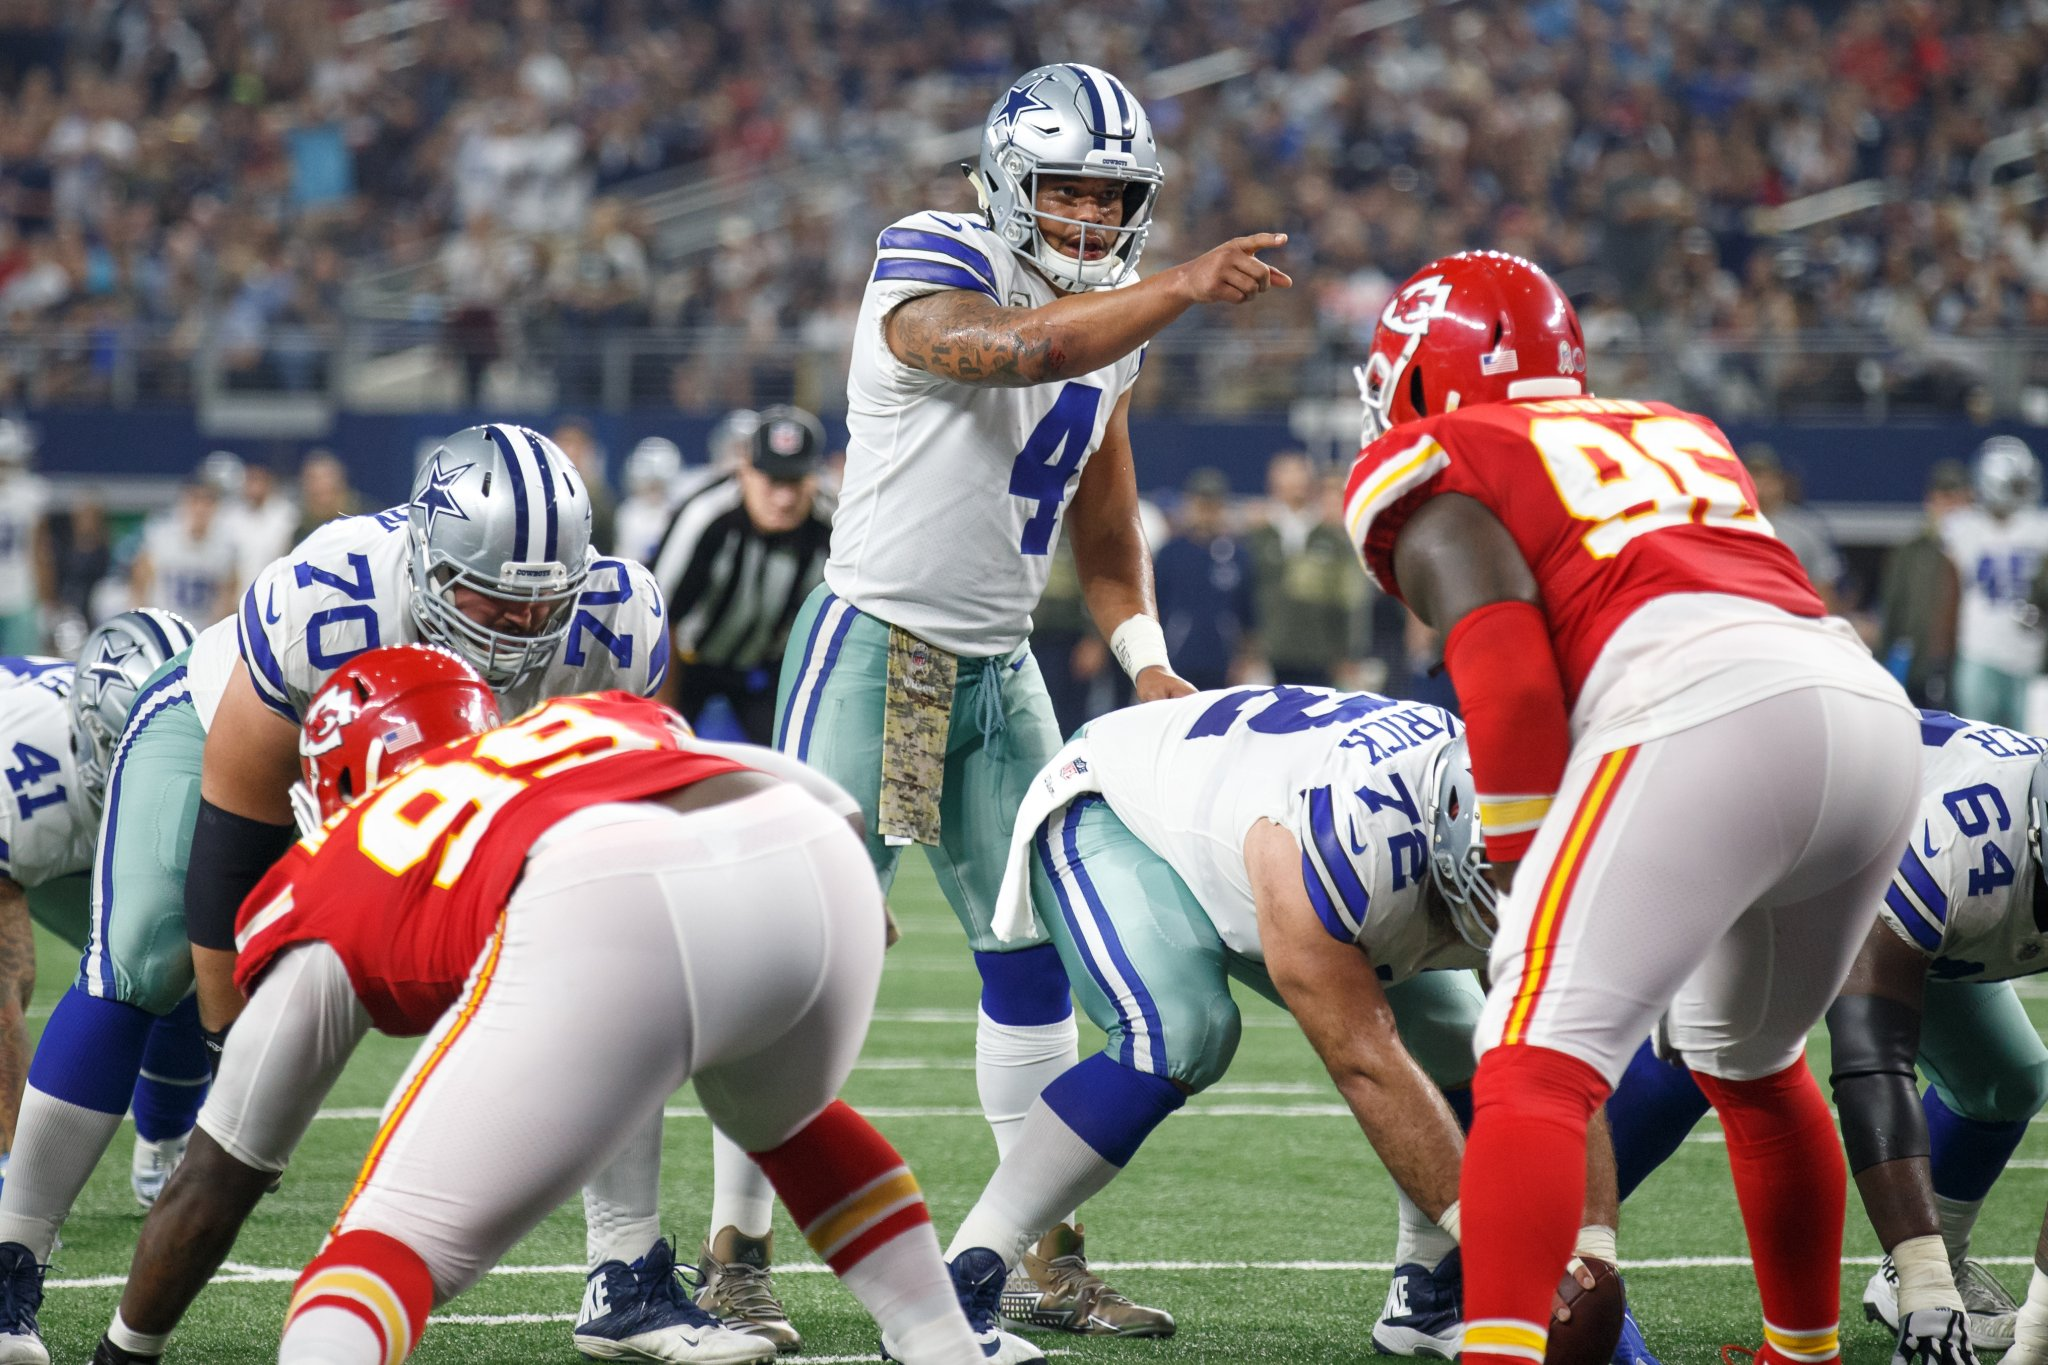 ESPN Computer Runs 20,000 Simulations For The NFL Season And Predicts The Dallas Cowboys Will Play The KC Chiefs In The Super Bowl - BroBible